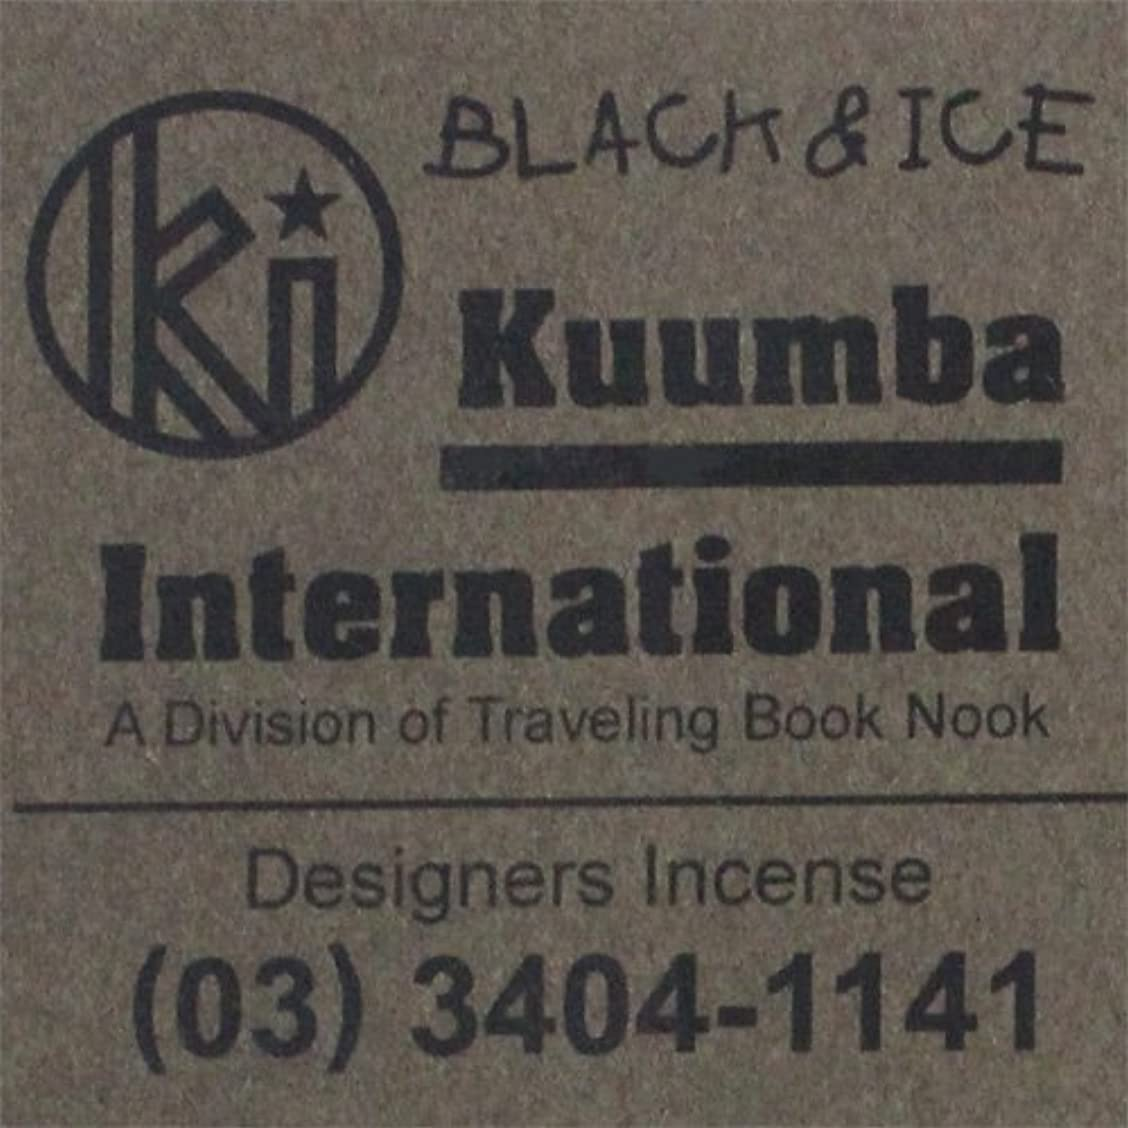 信念蛇行ブースKUUMBA / クンバ『incense』(BLACK&ICE) (Regular size)